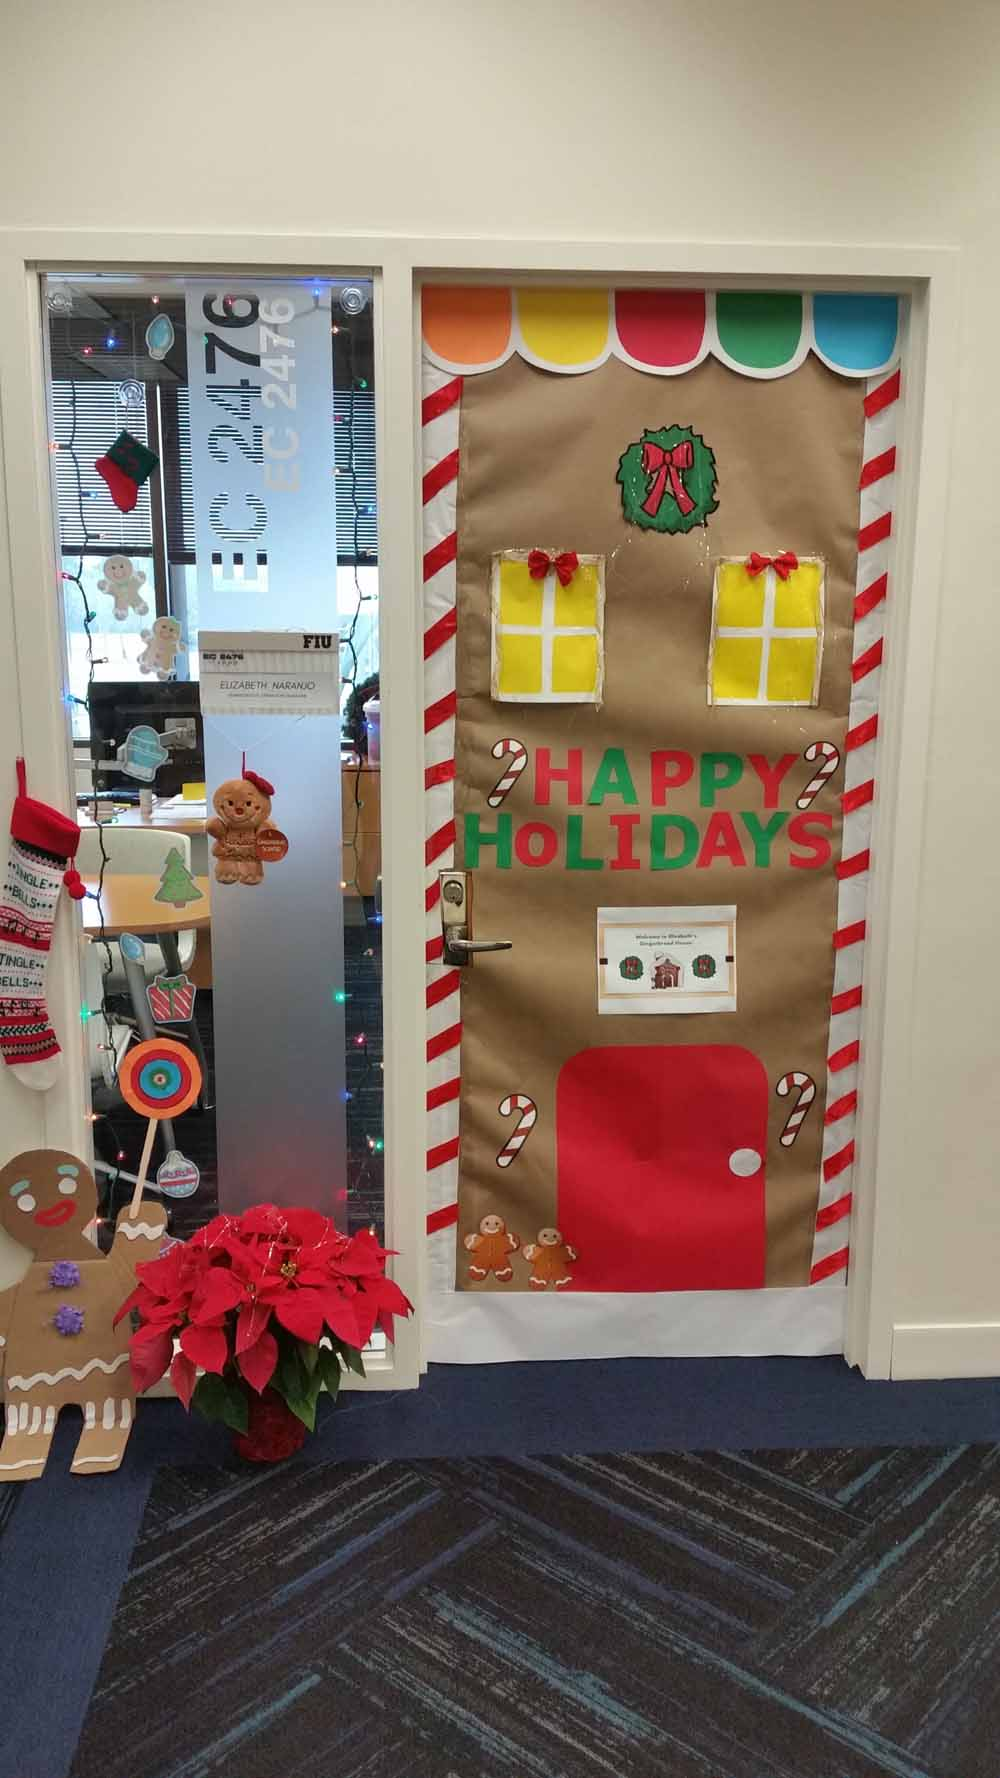 Deans Office Holiday Decorations